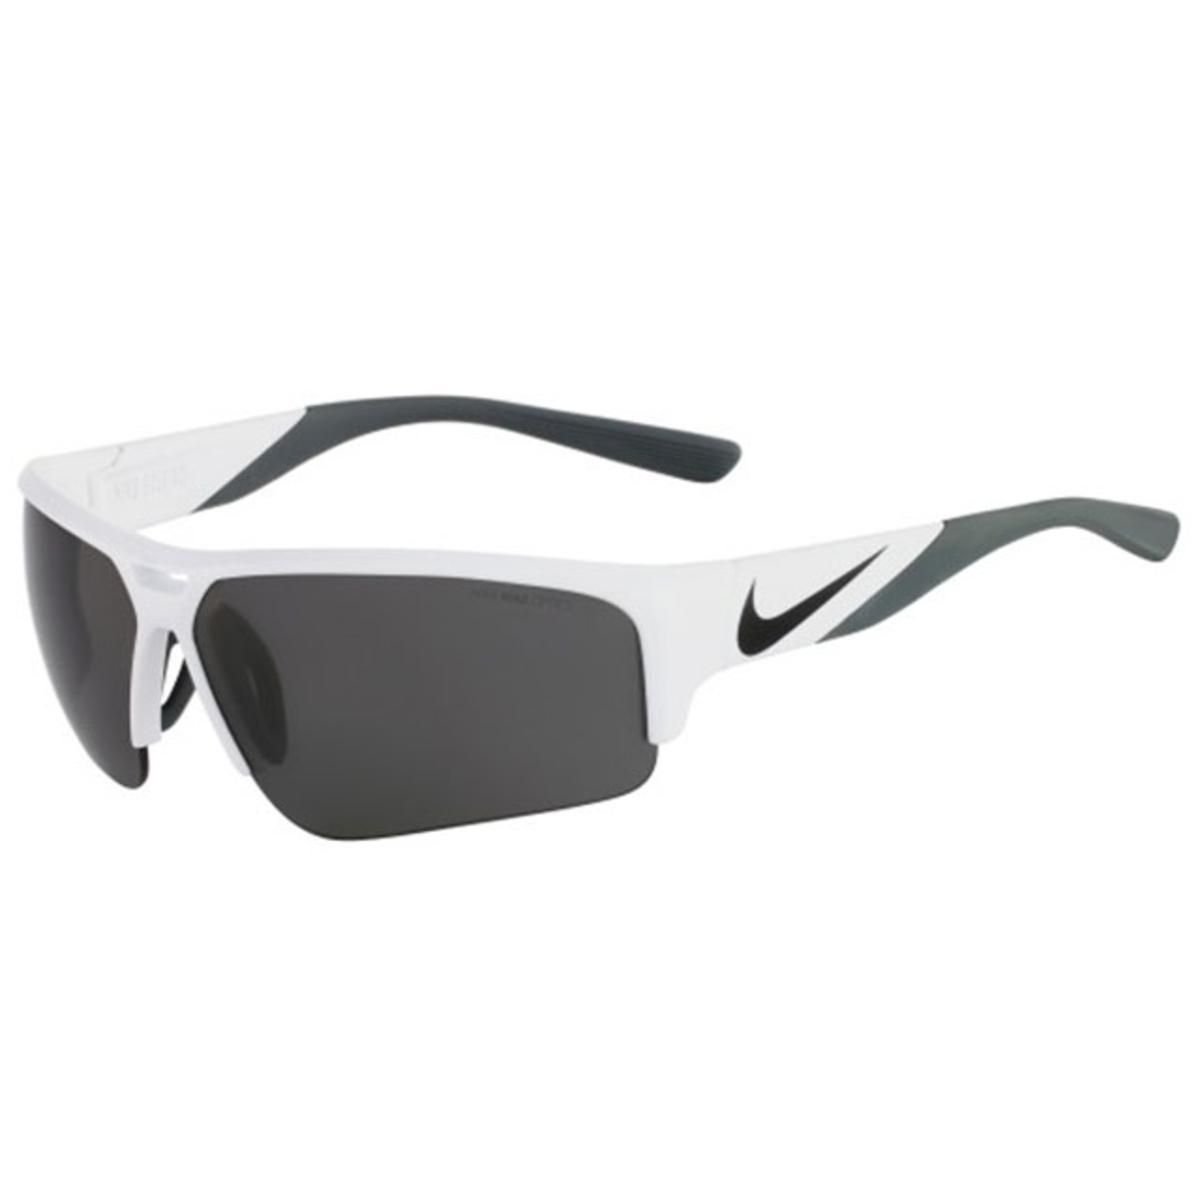 Nike 2911 Mens Golf X2 White Max Optics Semi Rimless Sport Sunglasses O/S  Bhfo